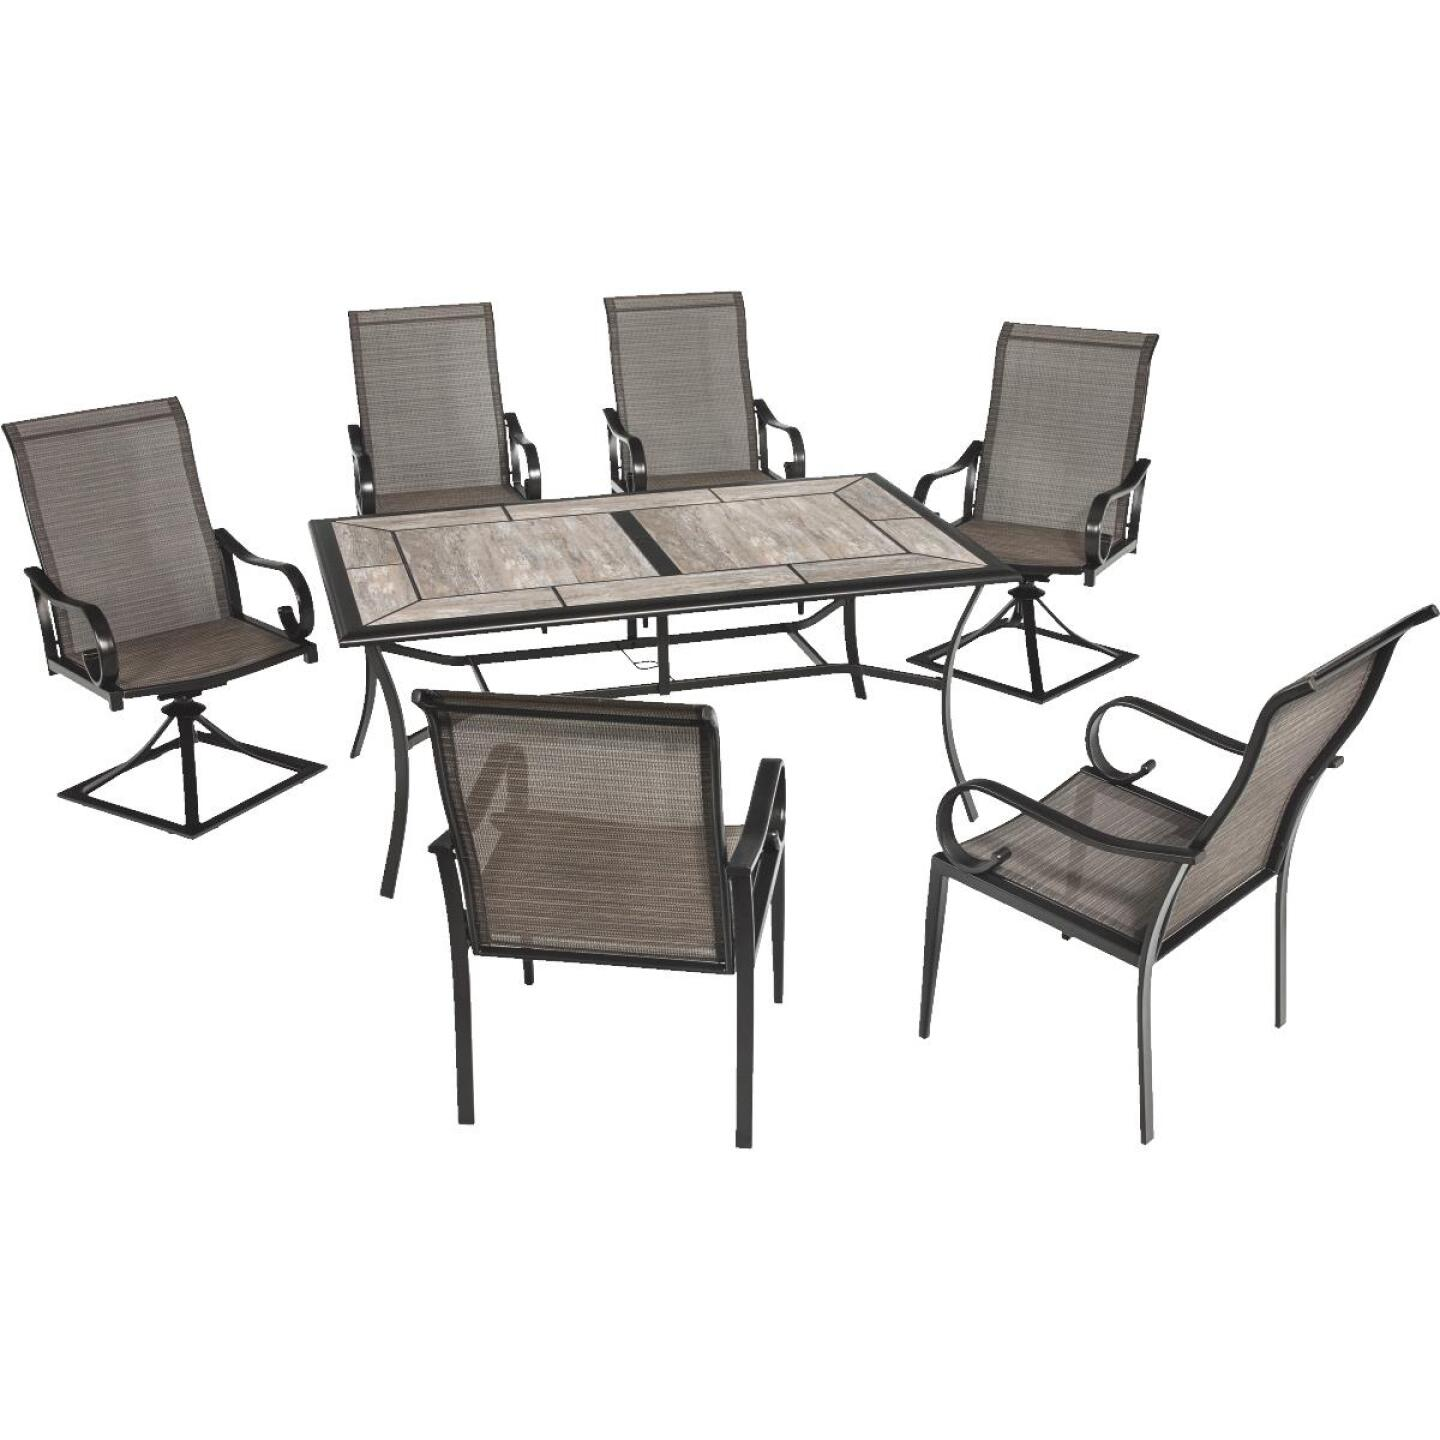 Outdoor Expressions Berkshire 7-Piece Dining Set Image 353